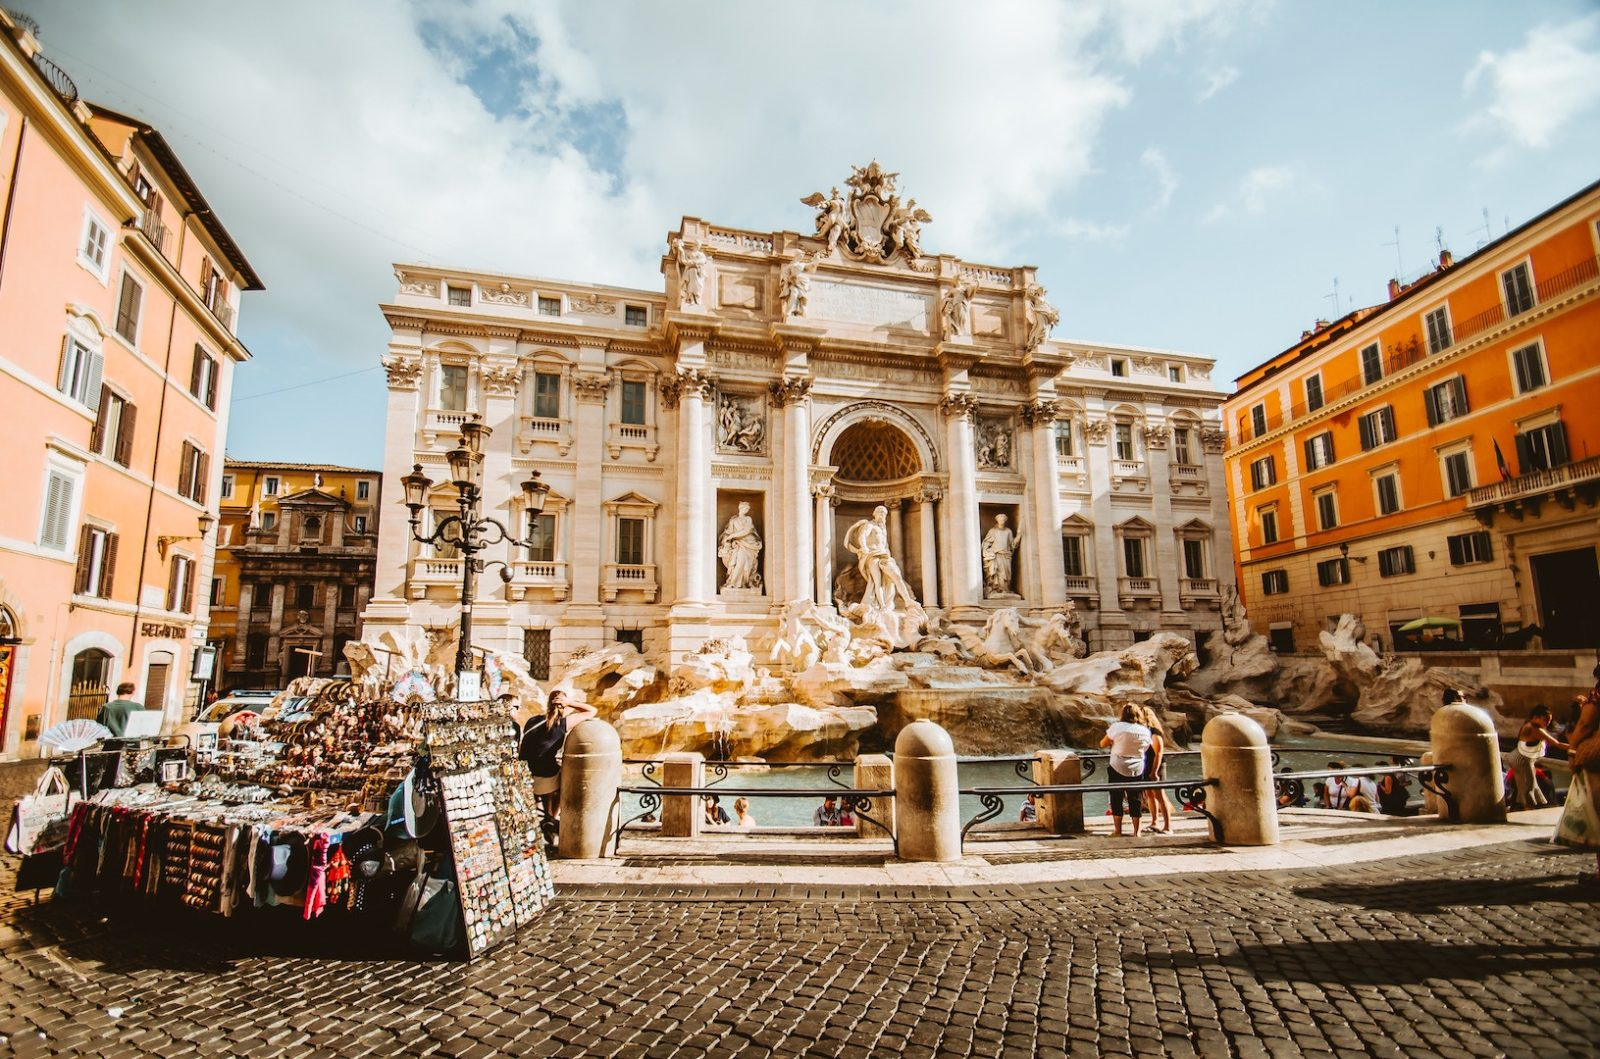 8 IDEAL SITES TO SEE ON A TRIP TO ROME